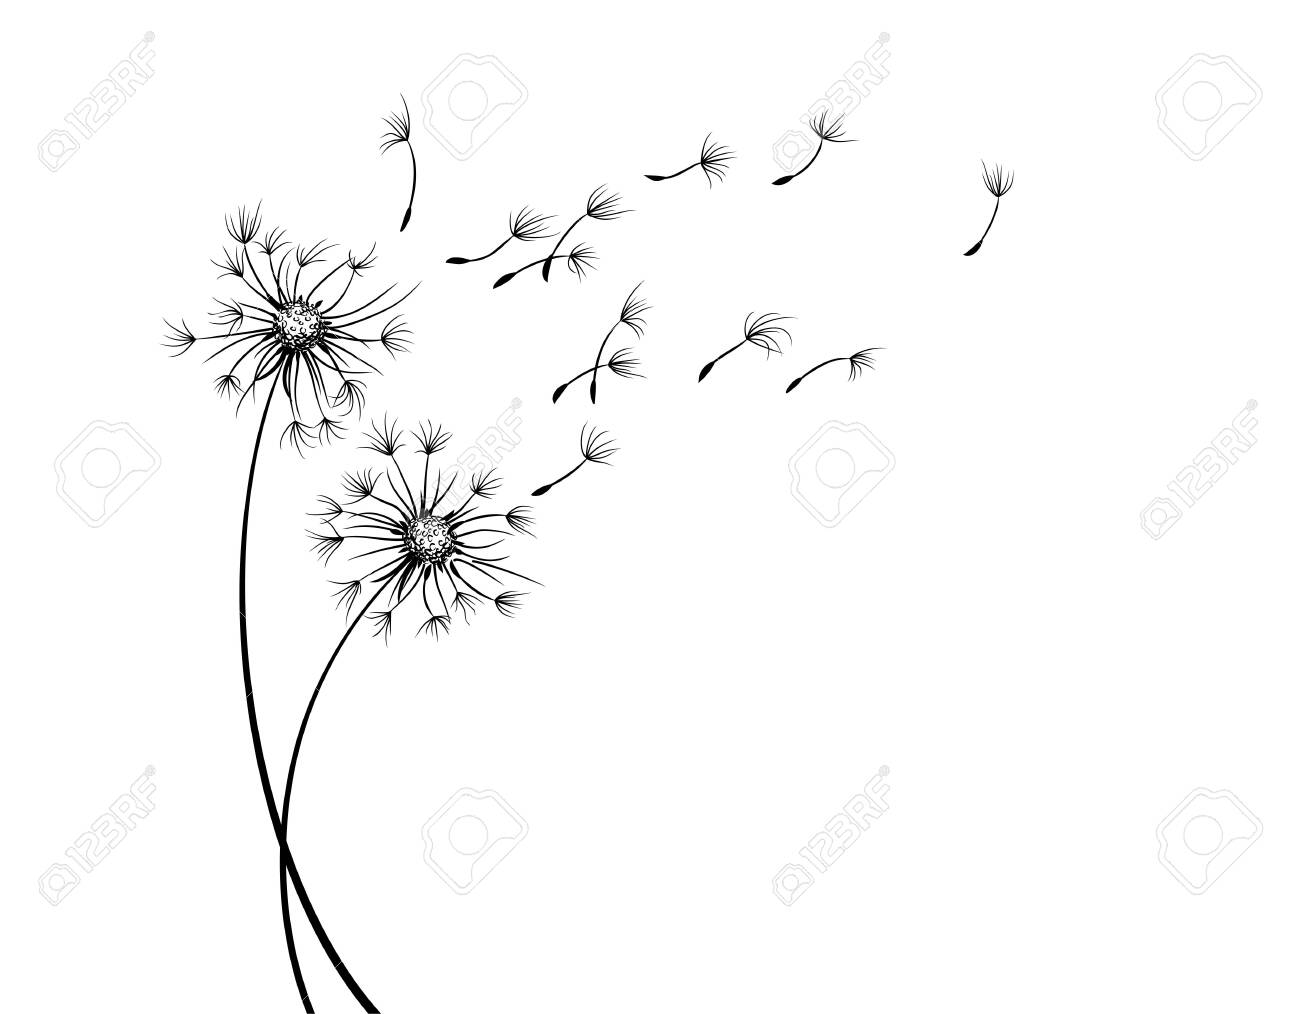 The Field dandelion flower sketch with flying seeds. - 150146347